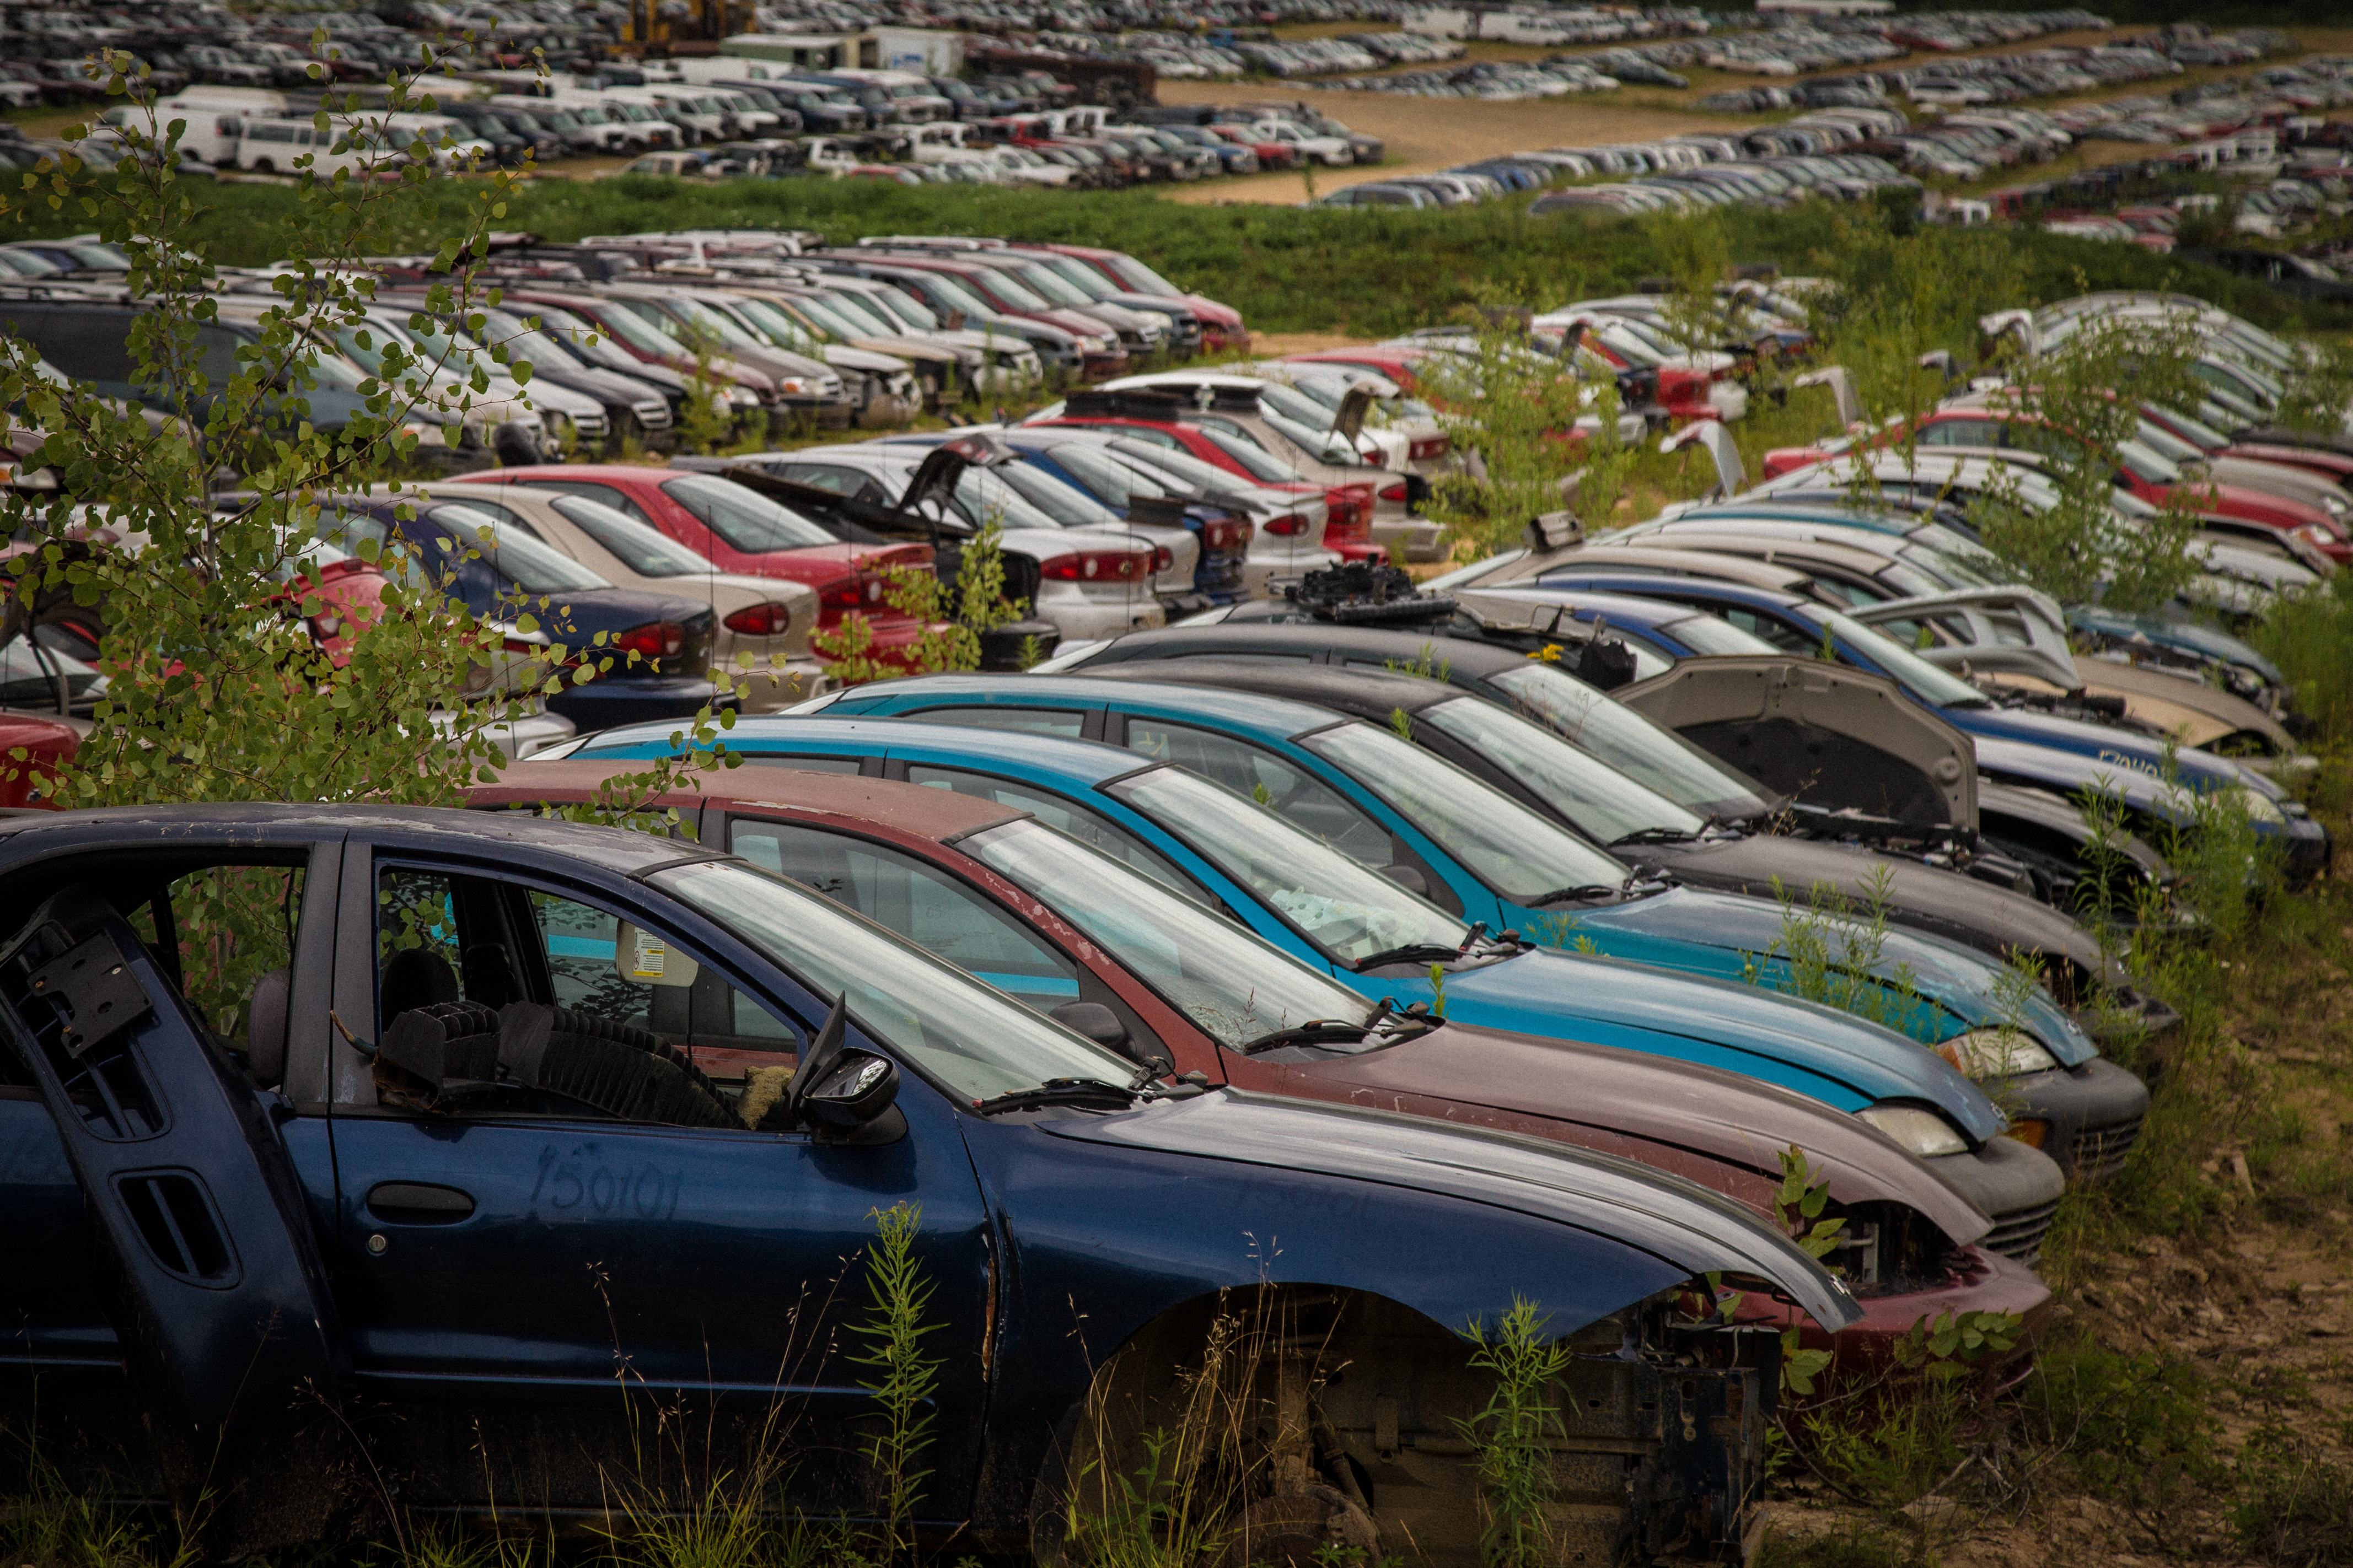 Car Graveyard (1 of 1)